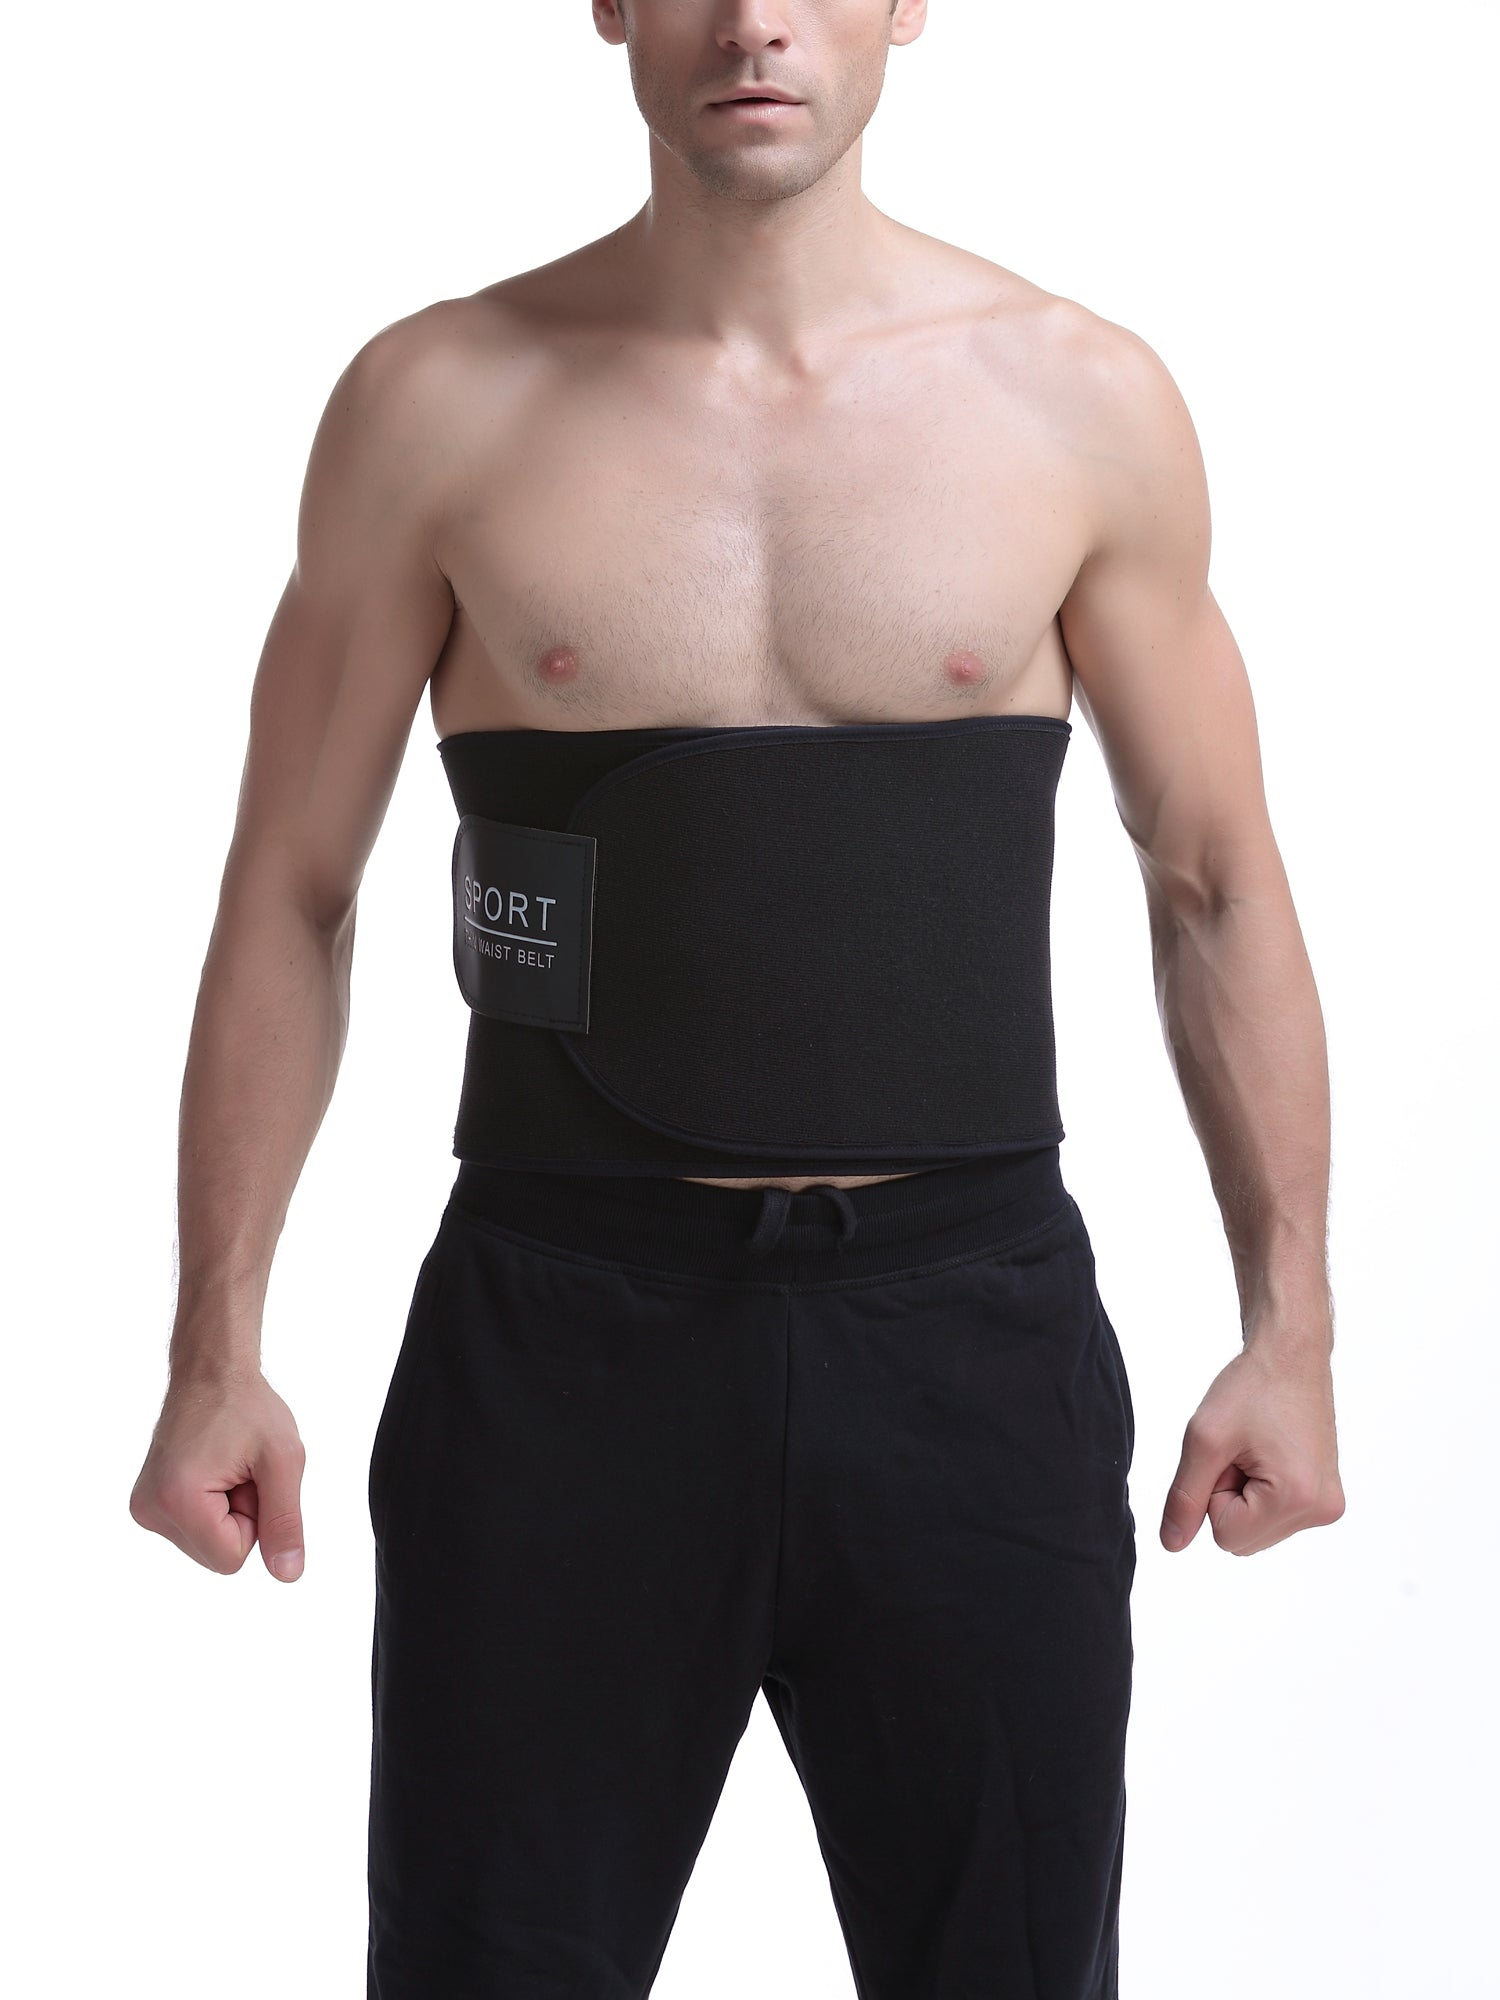 406a9816afc Waist Trimmer Sweat Sauna Belt Black – Bargoos Fashion